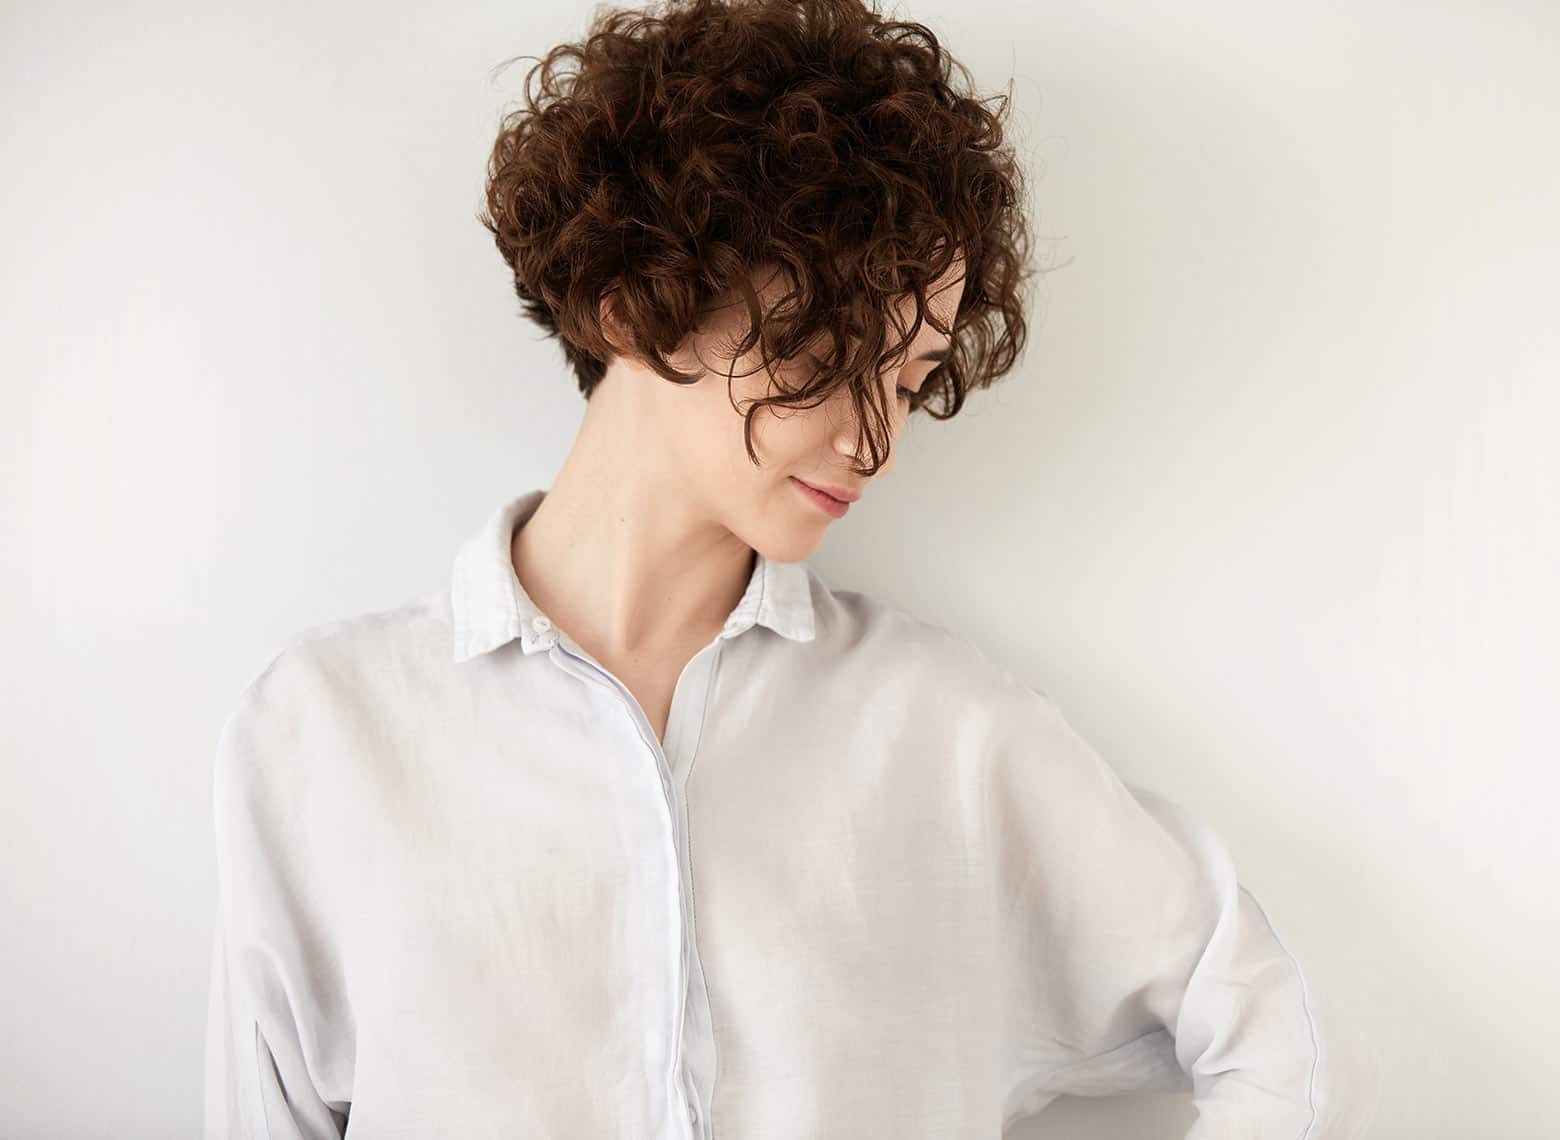 woman with short and curly hair